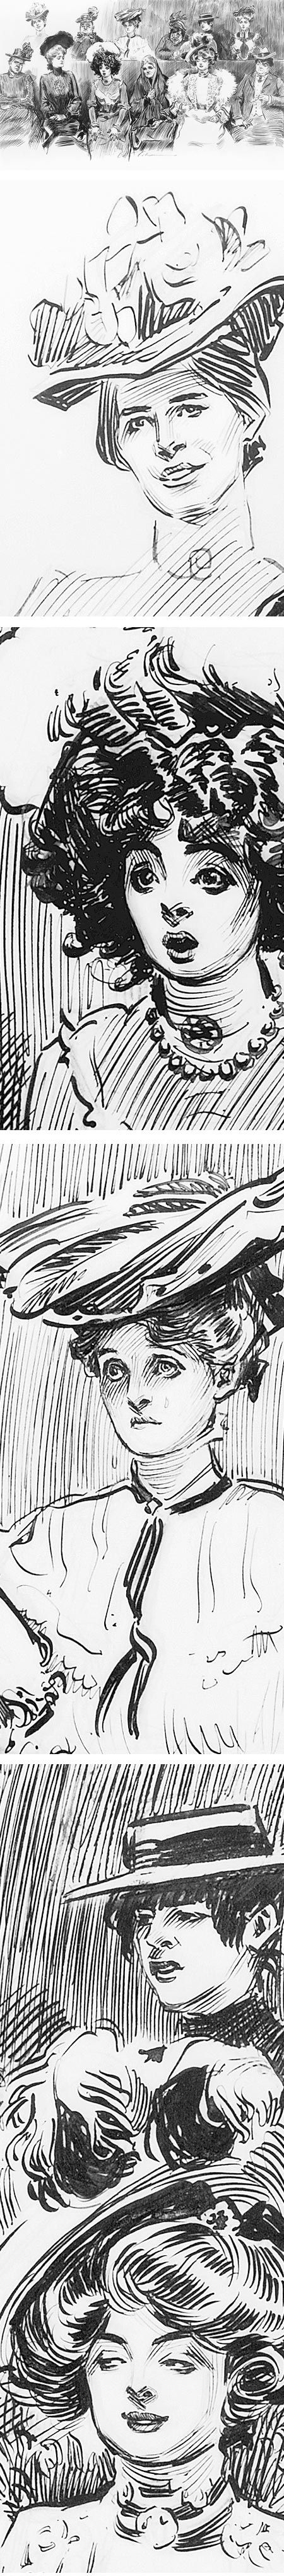 Studies In Expression. When Women Are Jurors, Charles Dana Gibson